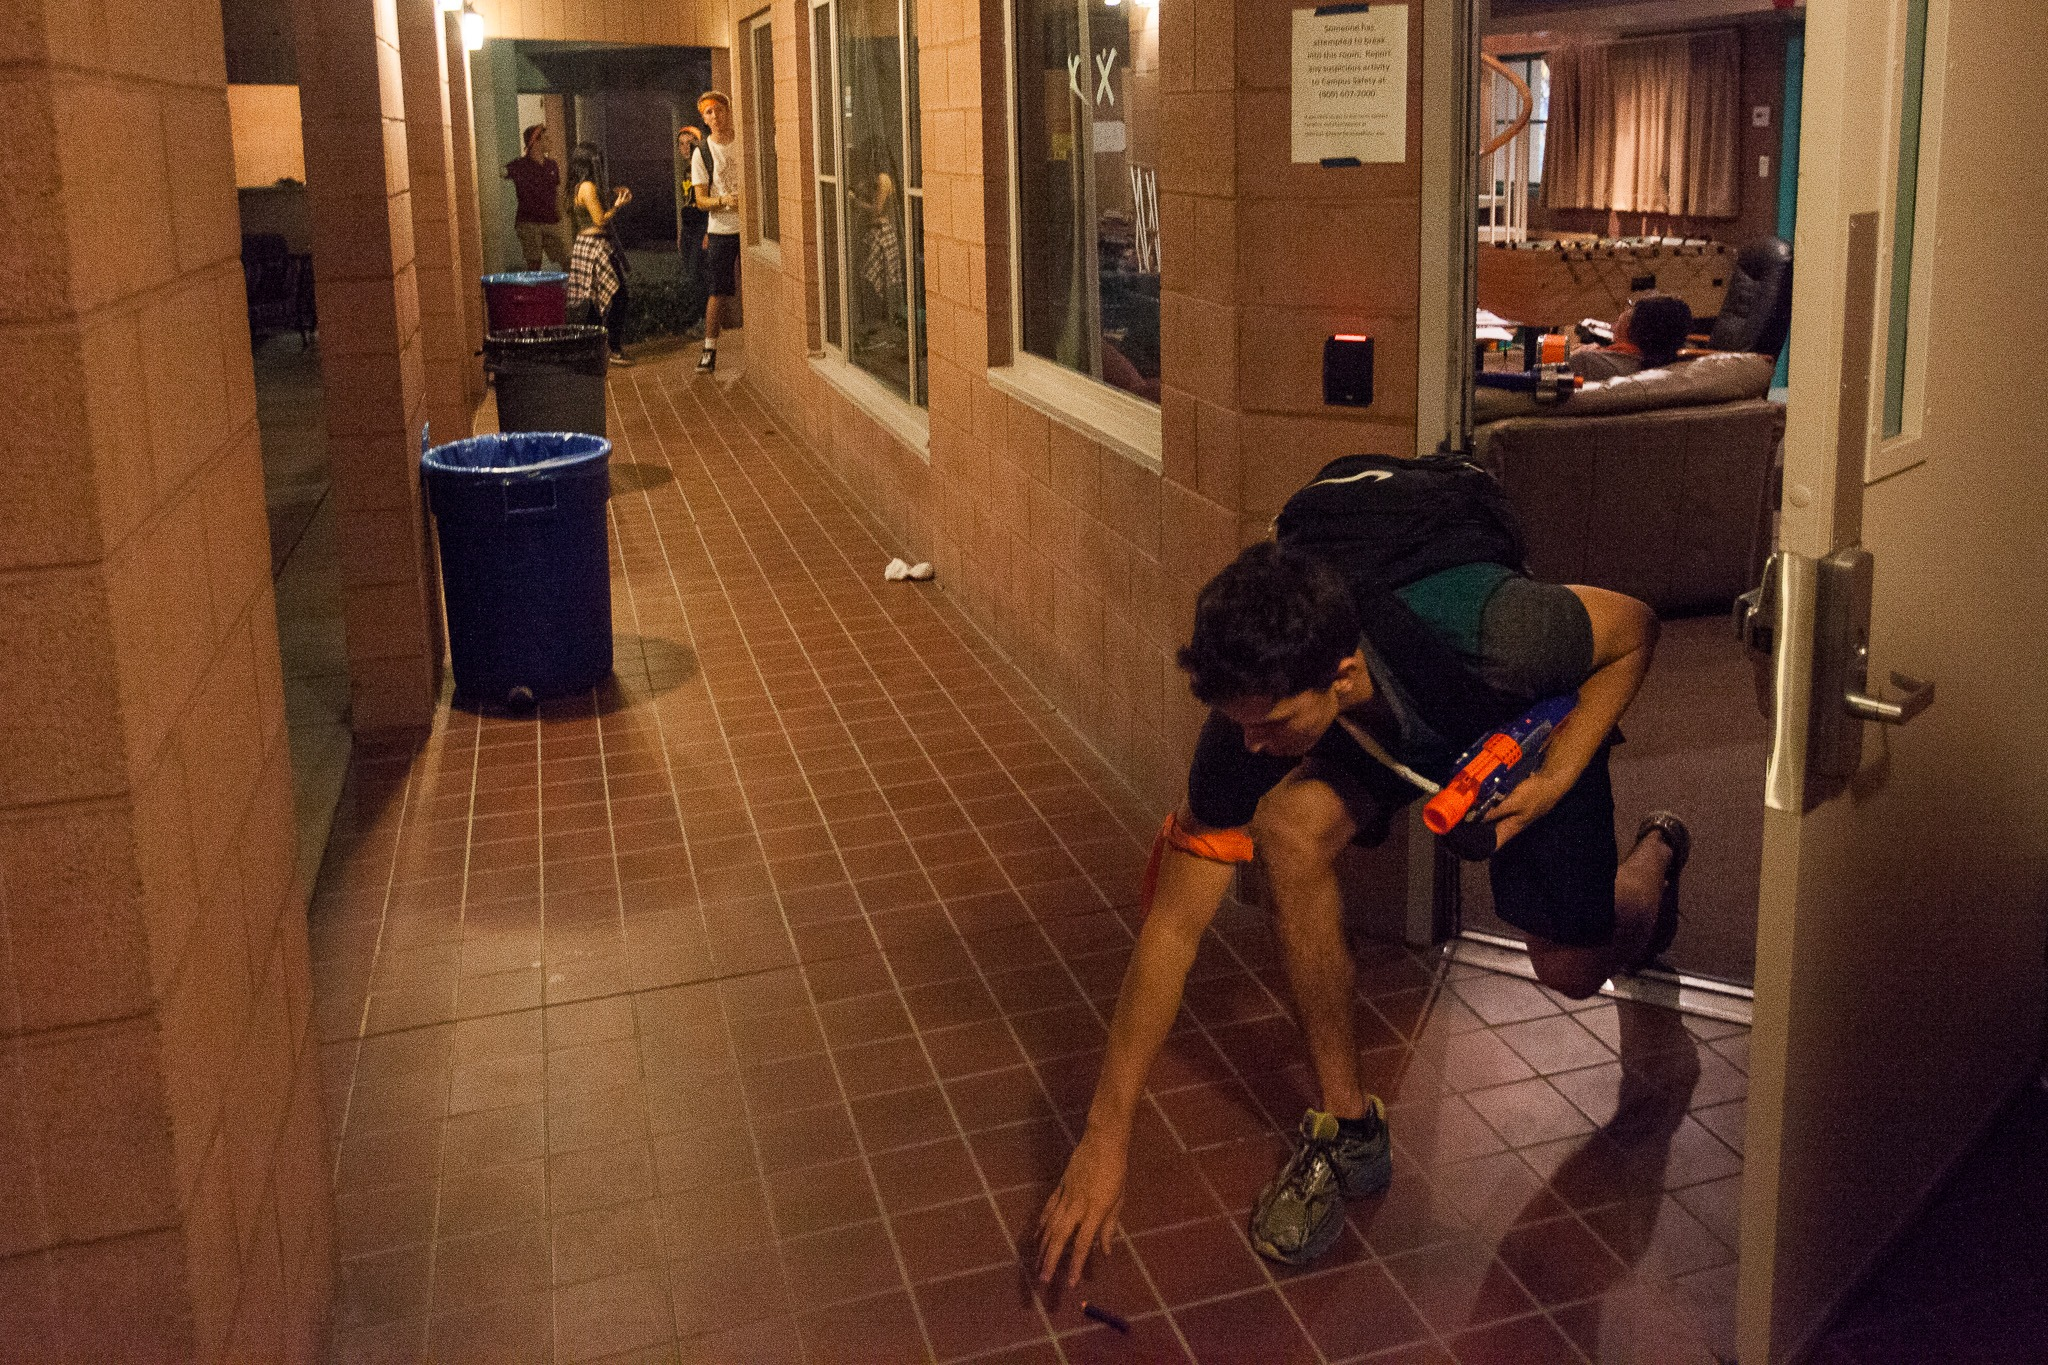 A student creeps out of a doorway during a stakeout in Case dorm. Photo credit: Liam Brooks